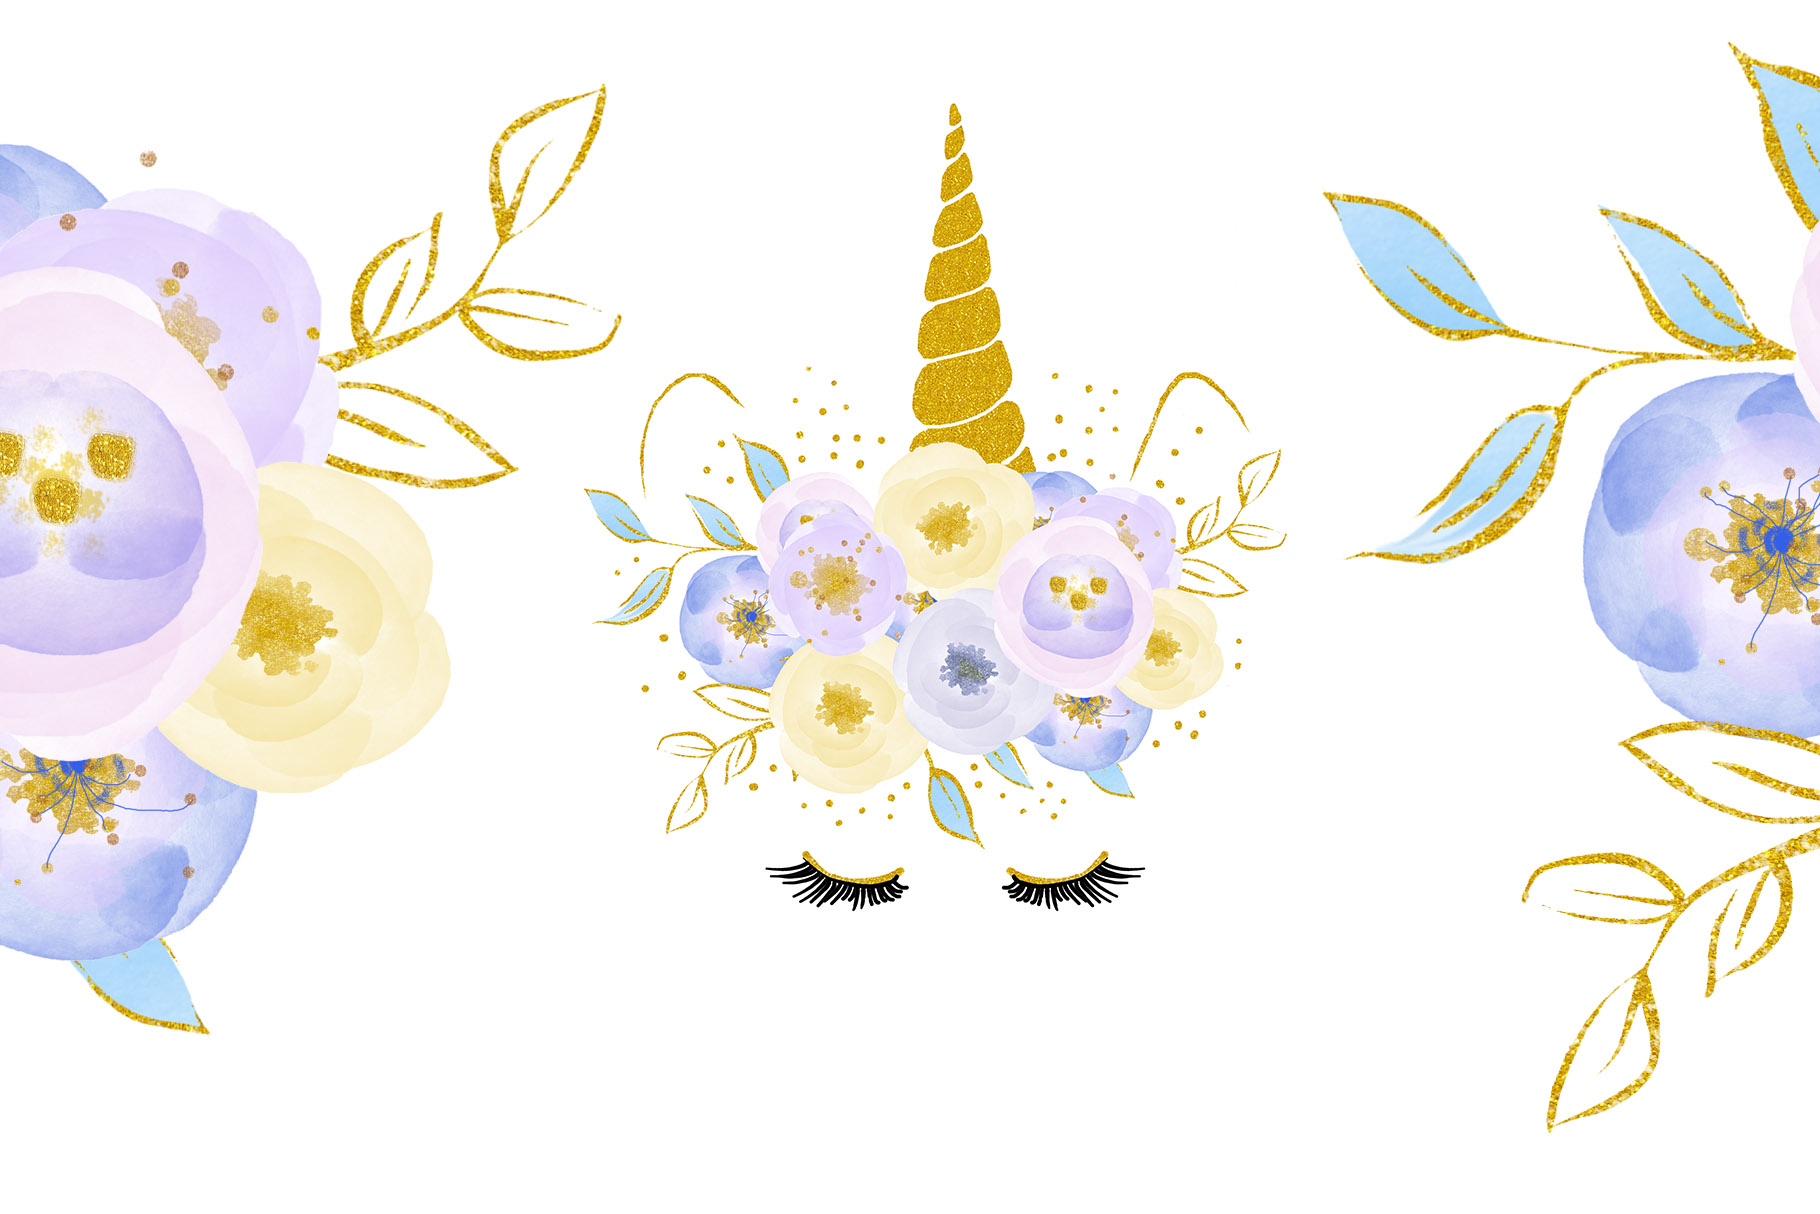 Unicorn clip art, flowers with gold example image 3